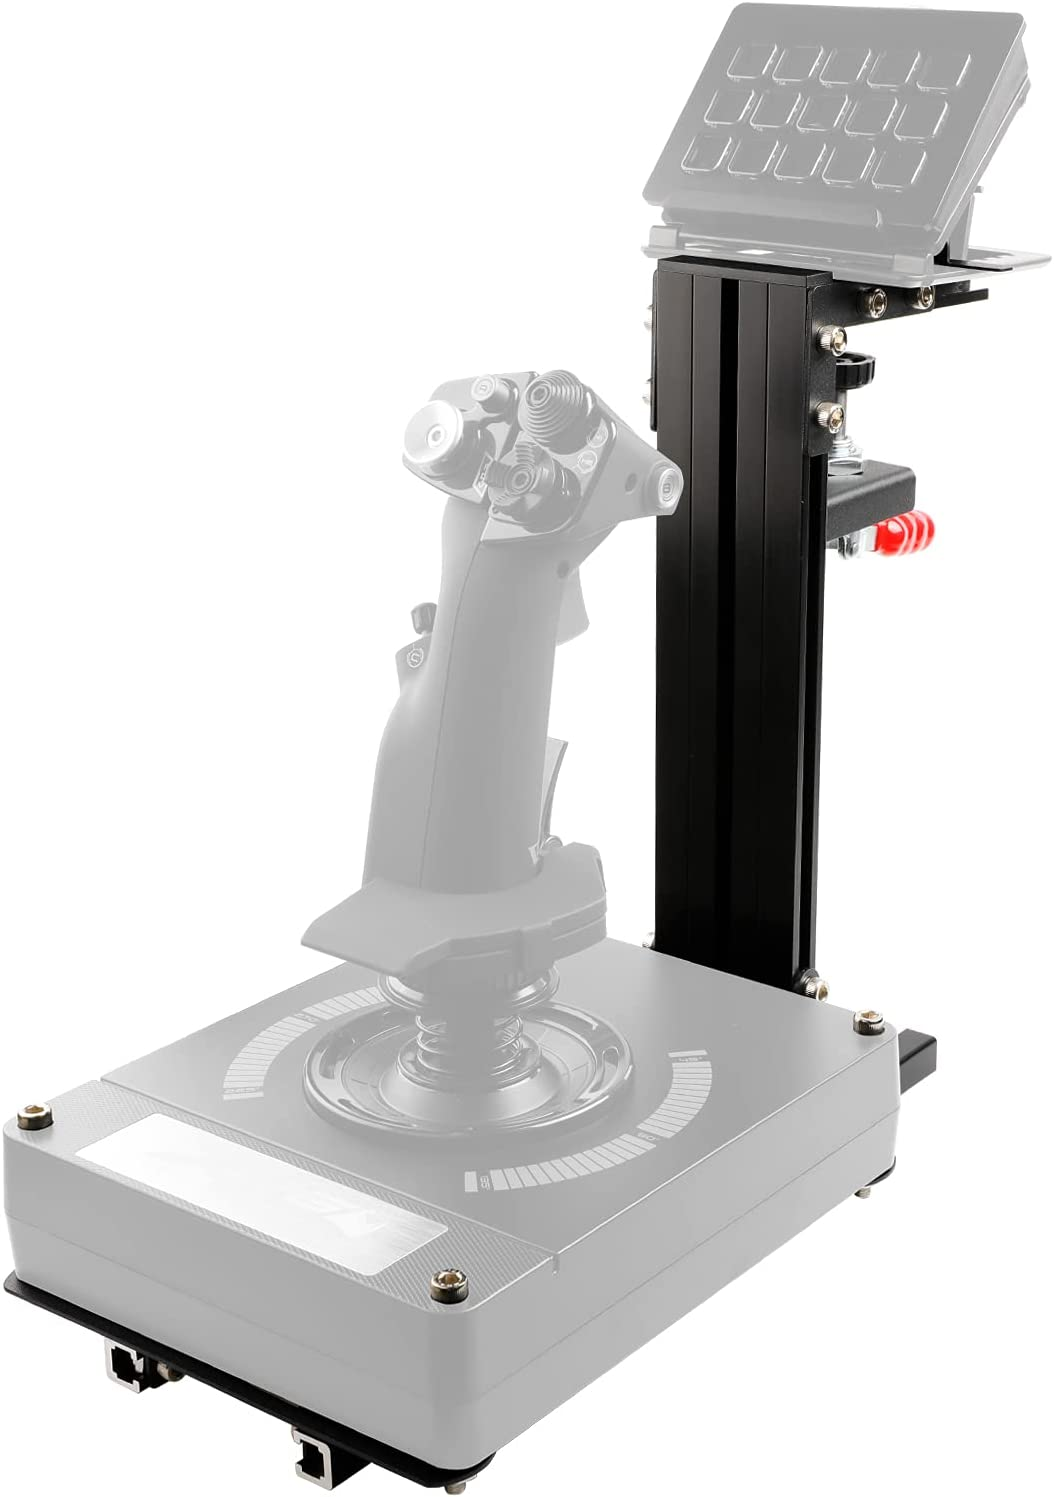 JUYEER Desk Mount Compatible with Almost All of The HOTAS Series Flight Simulation Controller-for The Flight Sim Game Joystick, Throttle and Hotas Systems. (Game Devices Not Included) - Black: Computers & Accessories